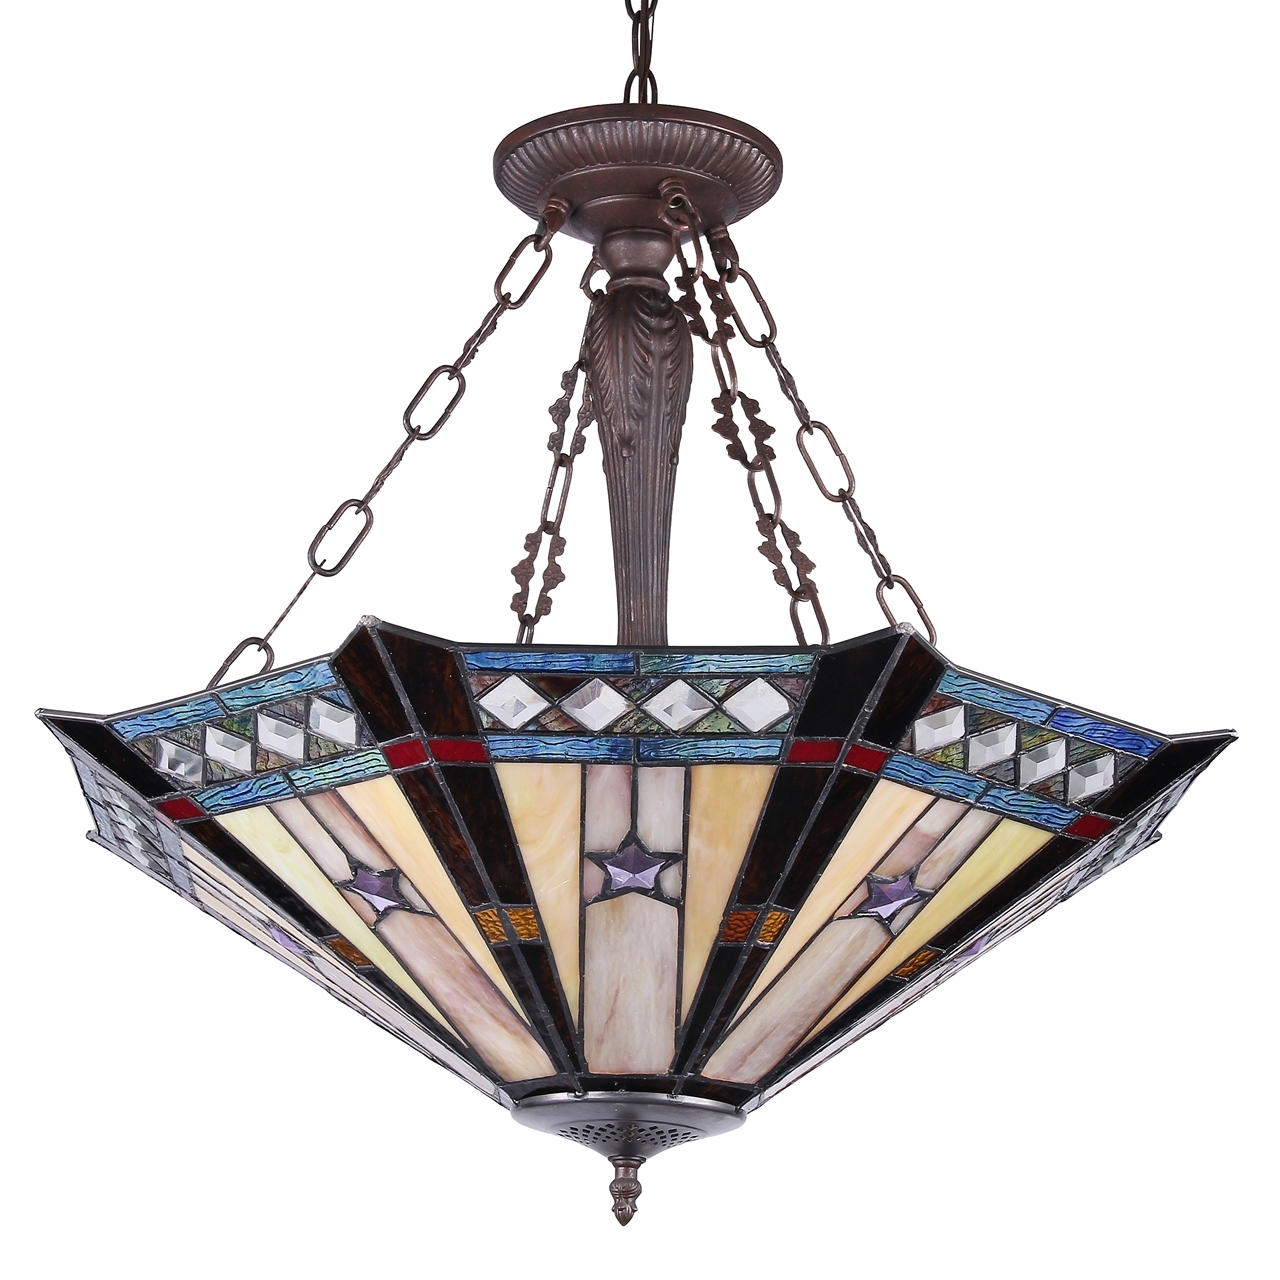 CHLOE Lighting, Inc Tiffany Lamp, Tiffany Lamps, Tiffany